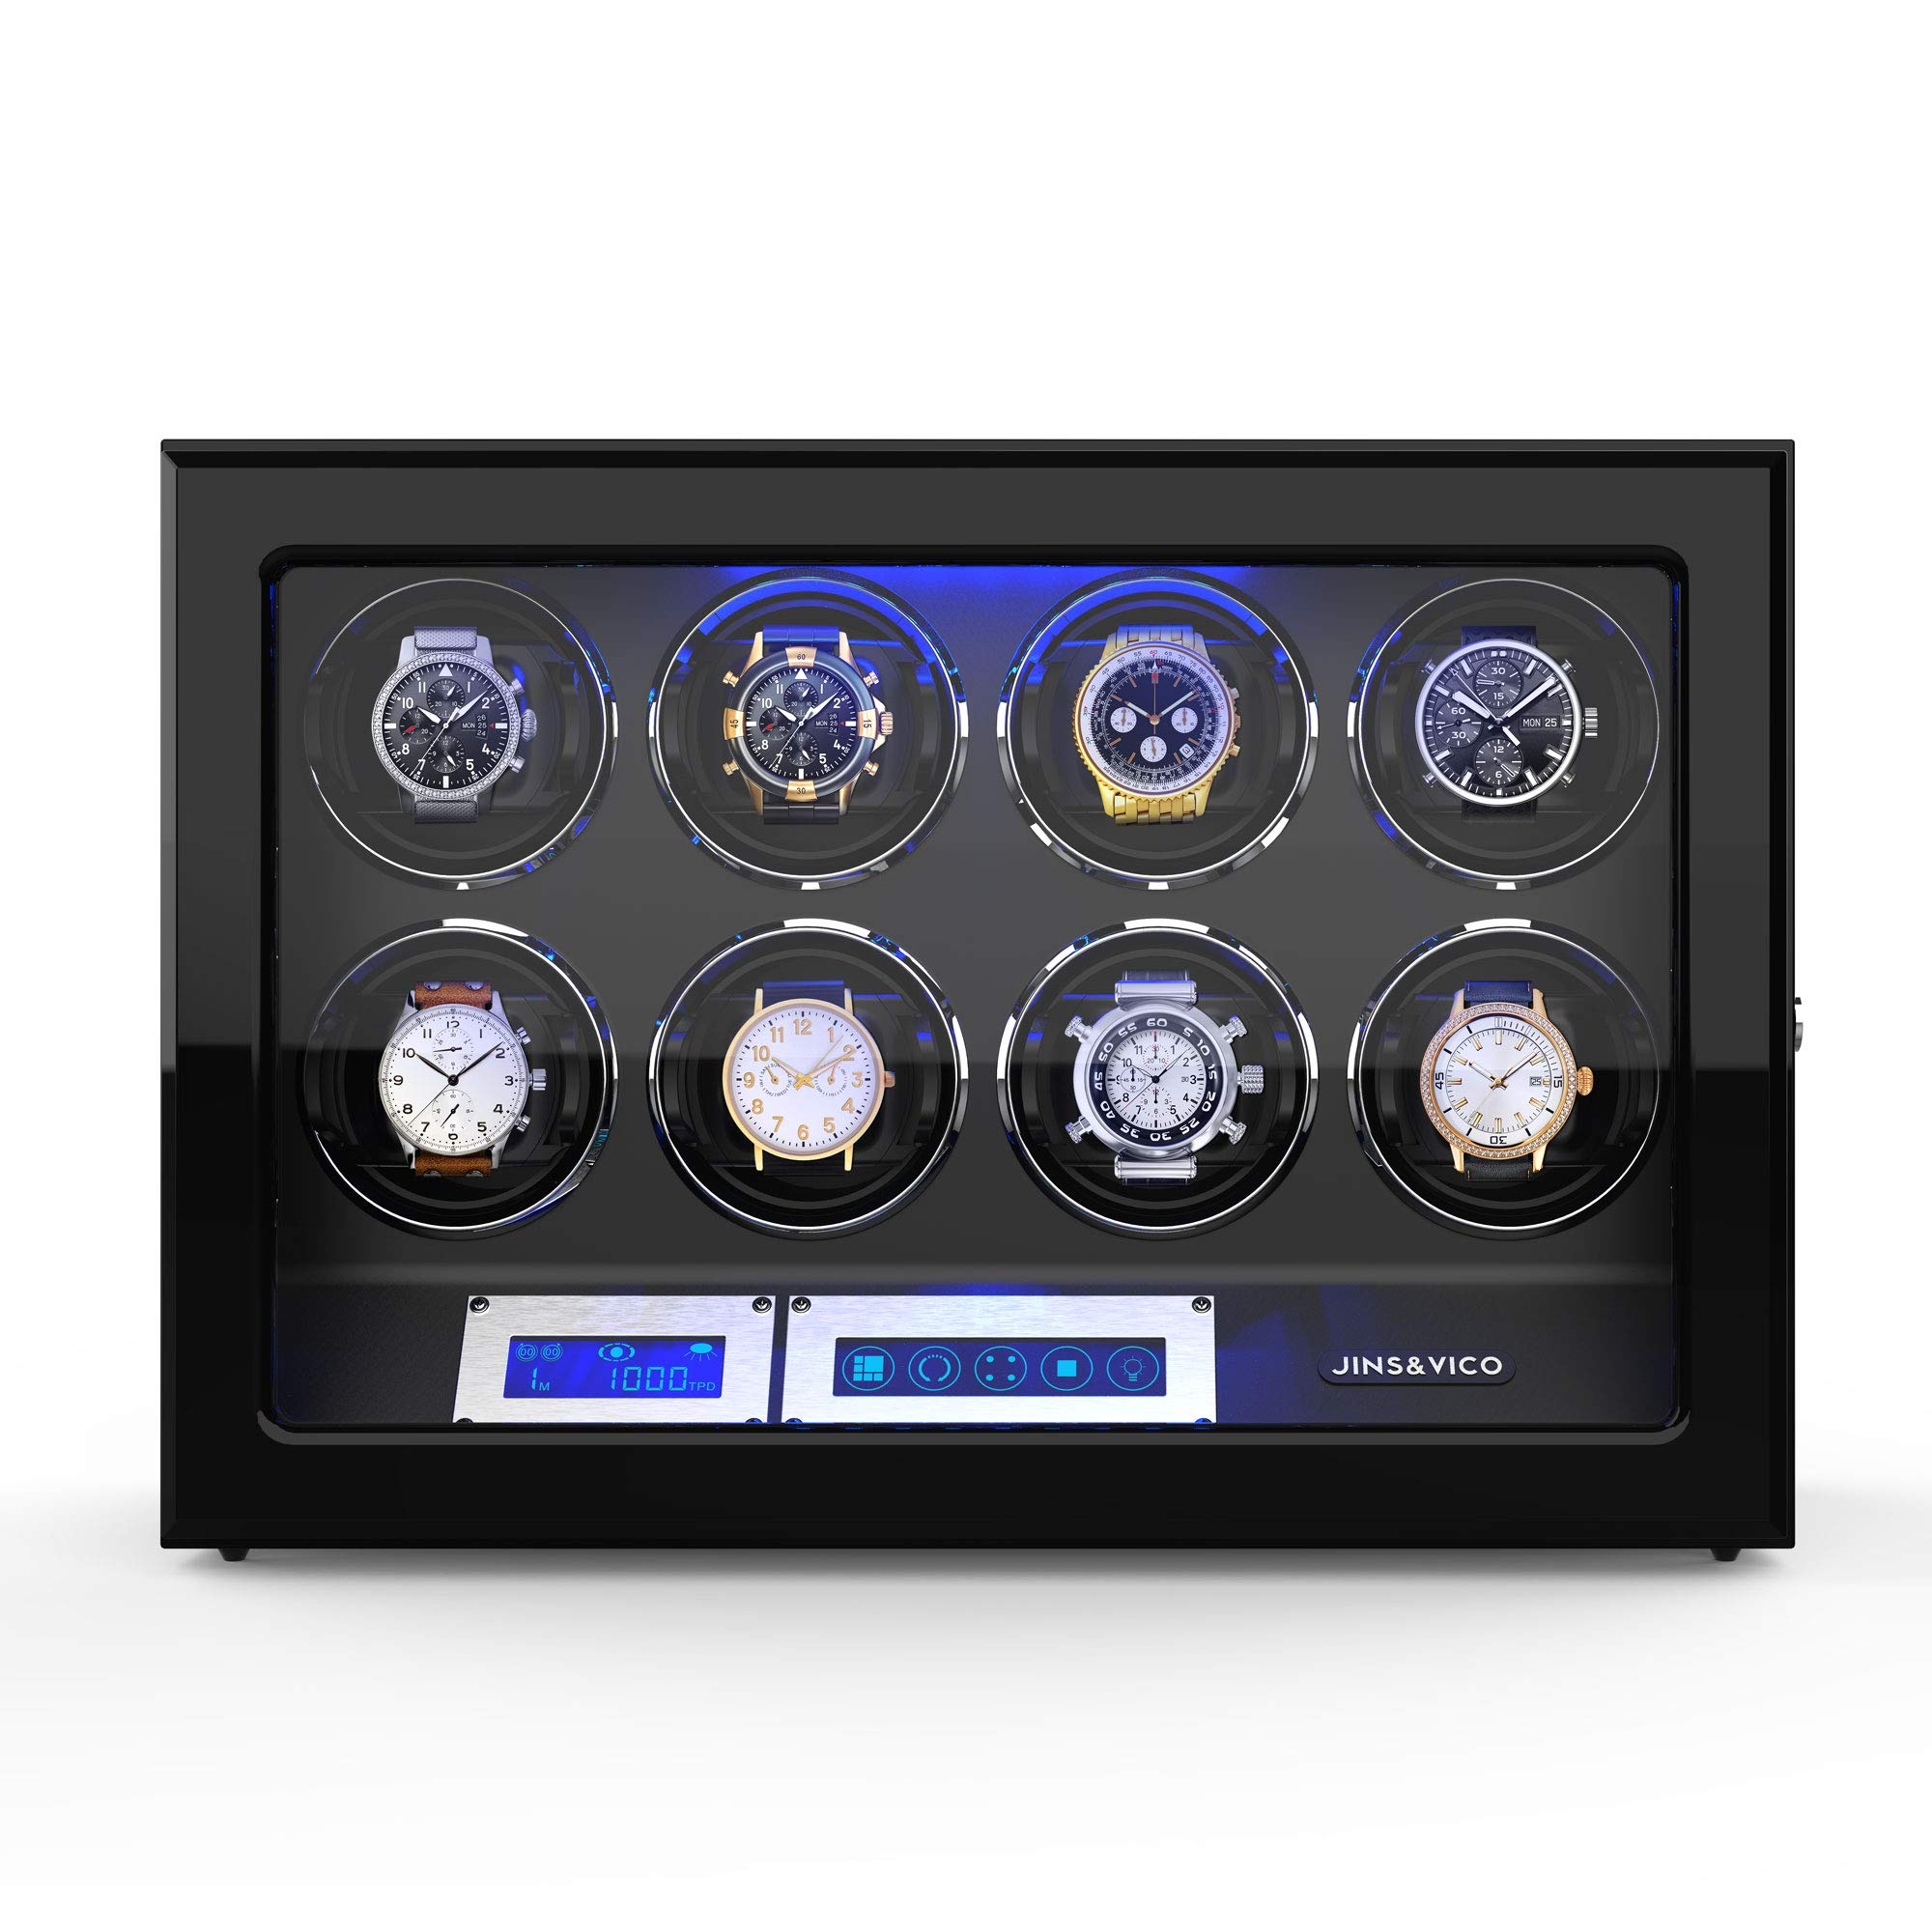 Watch Winder, [Newly Upgraded] Wooden Finish with Adjustable Watch Pillows, 8 Winding Spaces Watch Winders for Automatic Watches, Built-in Illumination